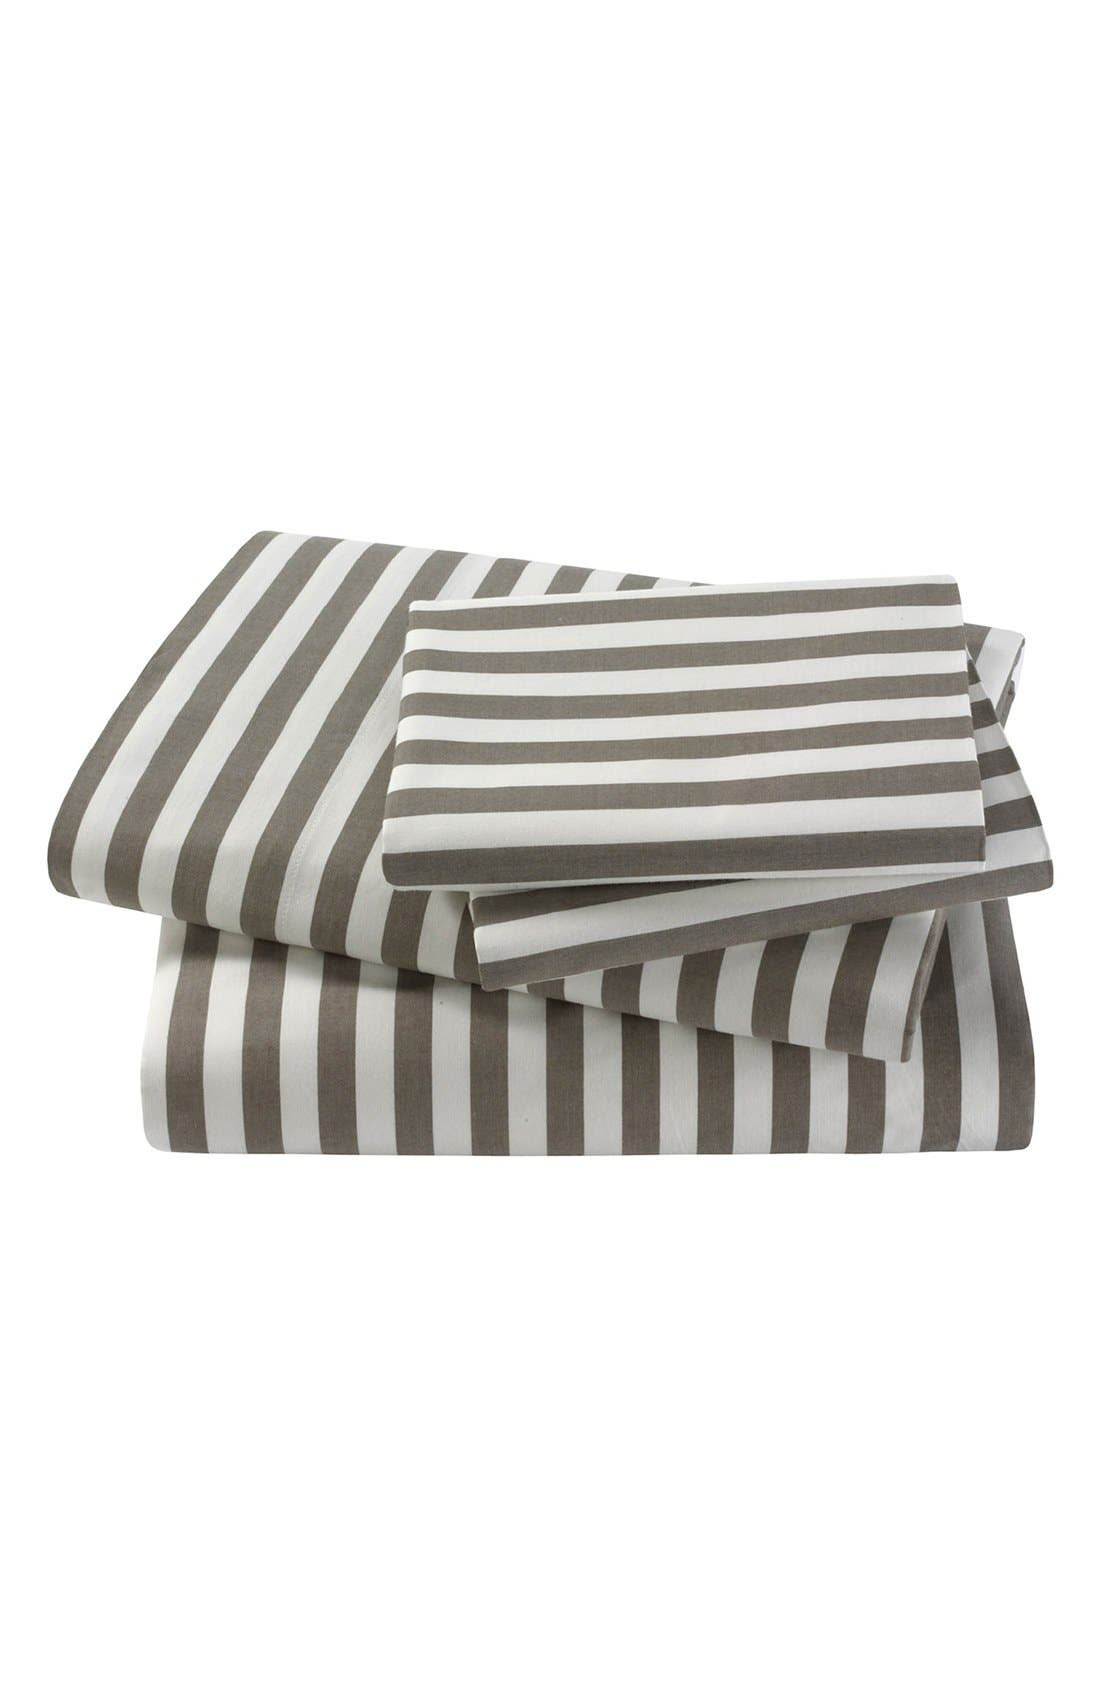 'Draper Stripe' 300 Thread Count Sheet Set,                             Main thumbnail 1, color,                             020